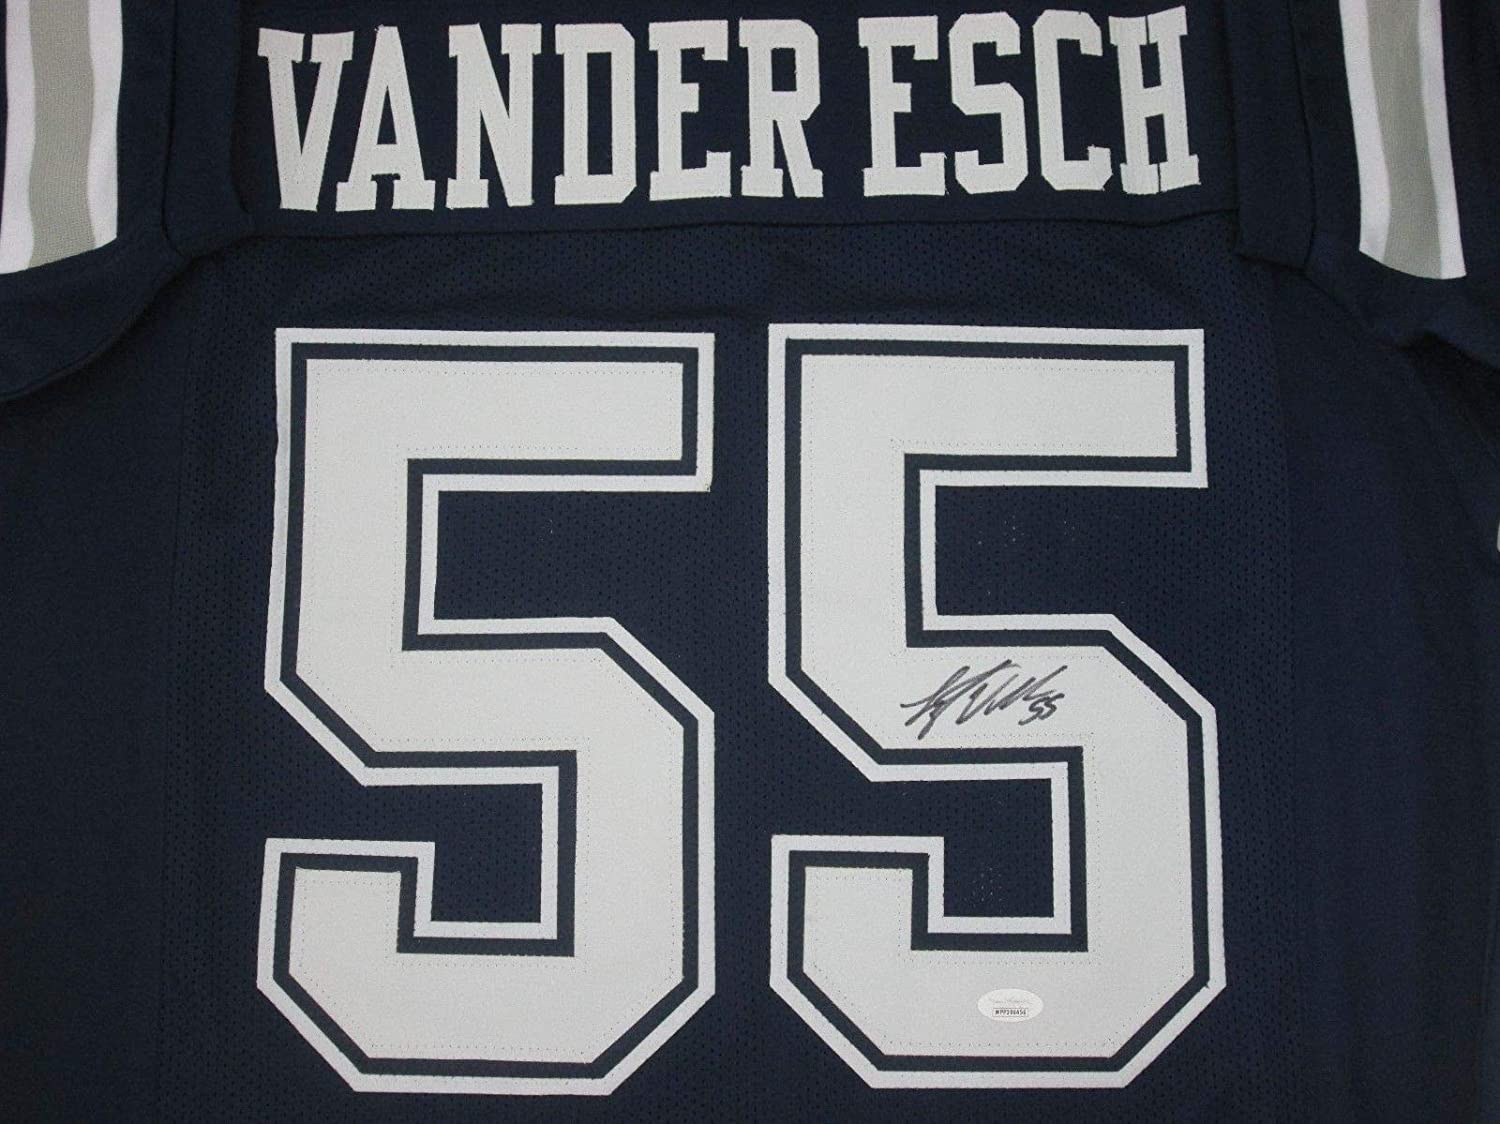 4f18234e671 Cowboys Leighton Vander Esch Autographed Signed Custom Navy Jersey Auto JSA  Boise State at Amazon s Sports Collectibles Store